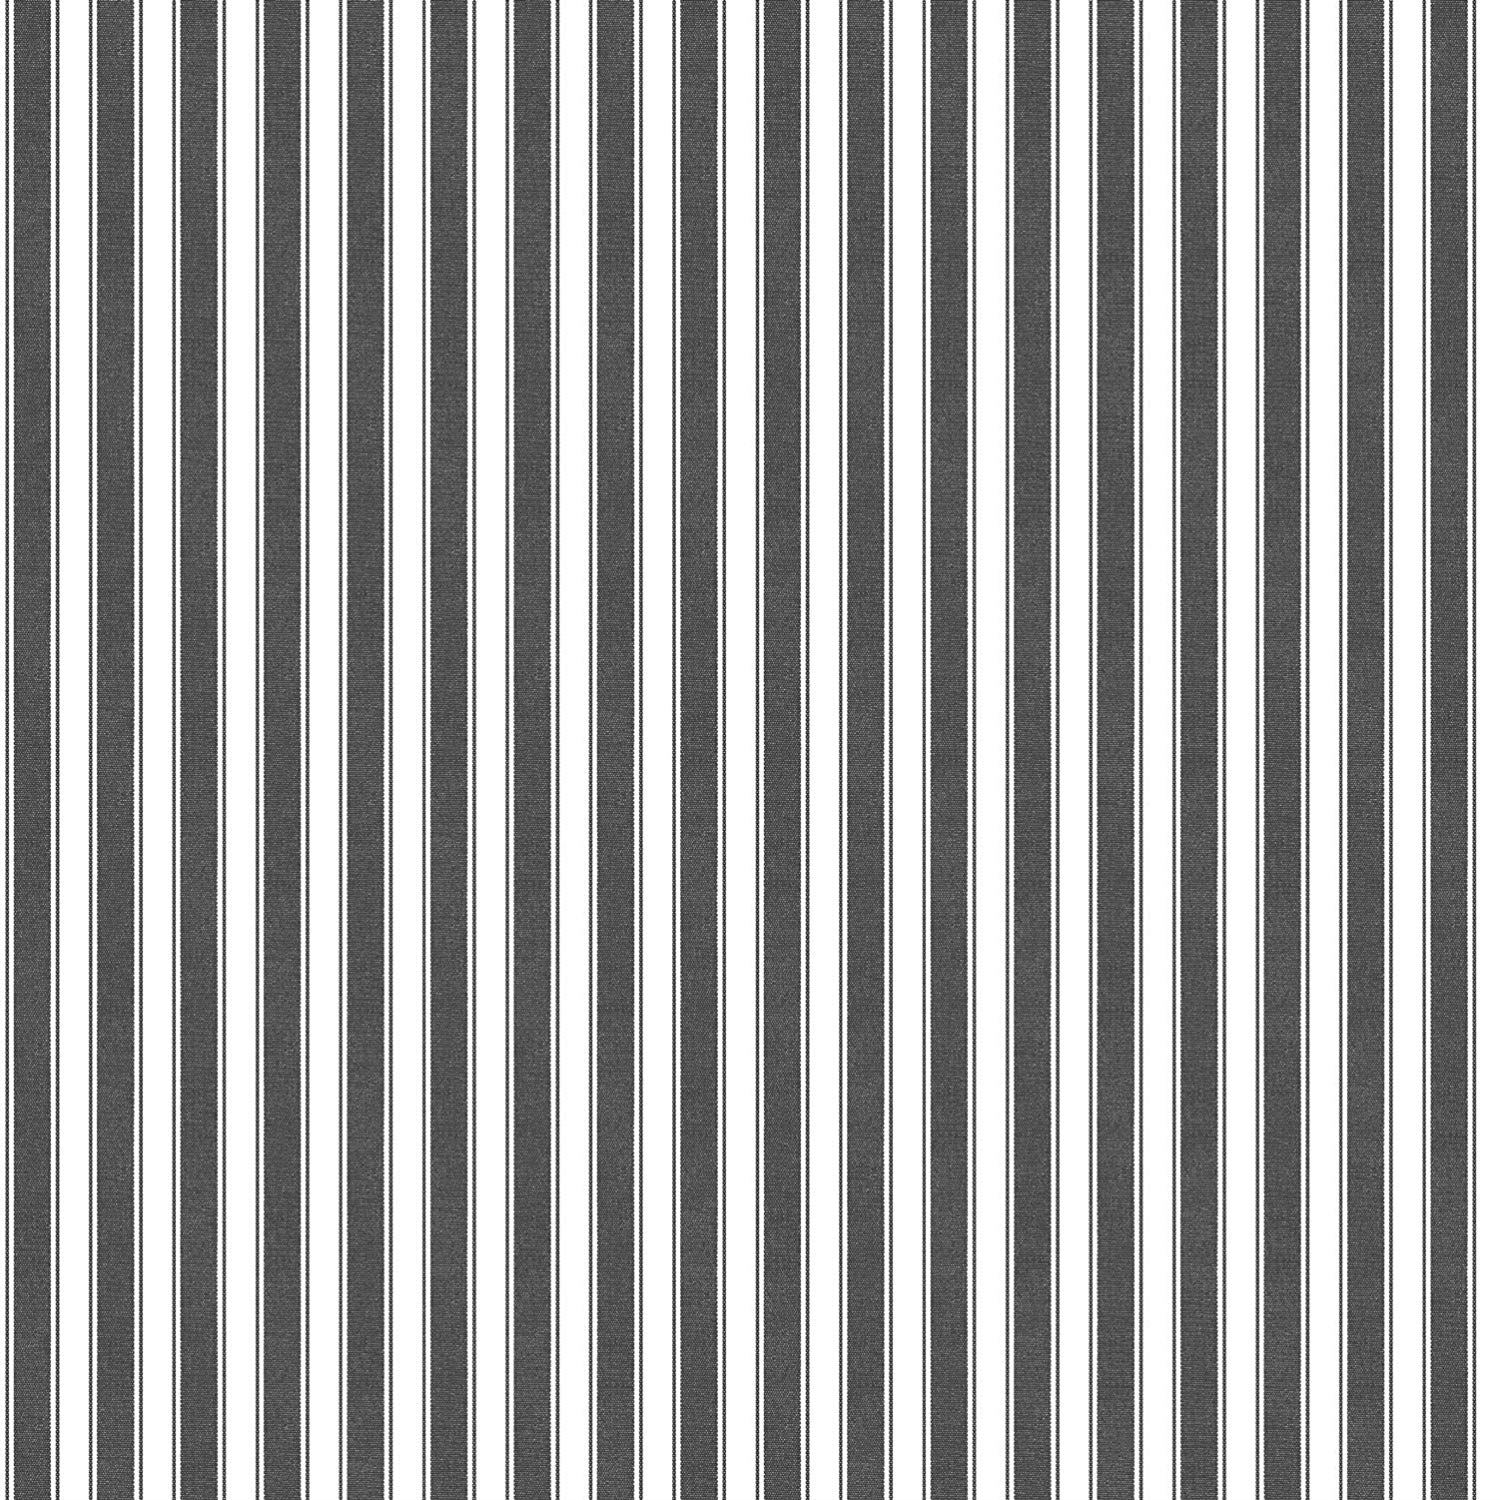 3 x Rolls Black White Barcode Stripe Wallpaper Vertical Feature Paste The Wall